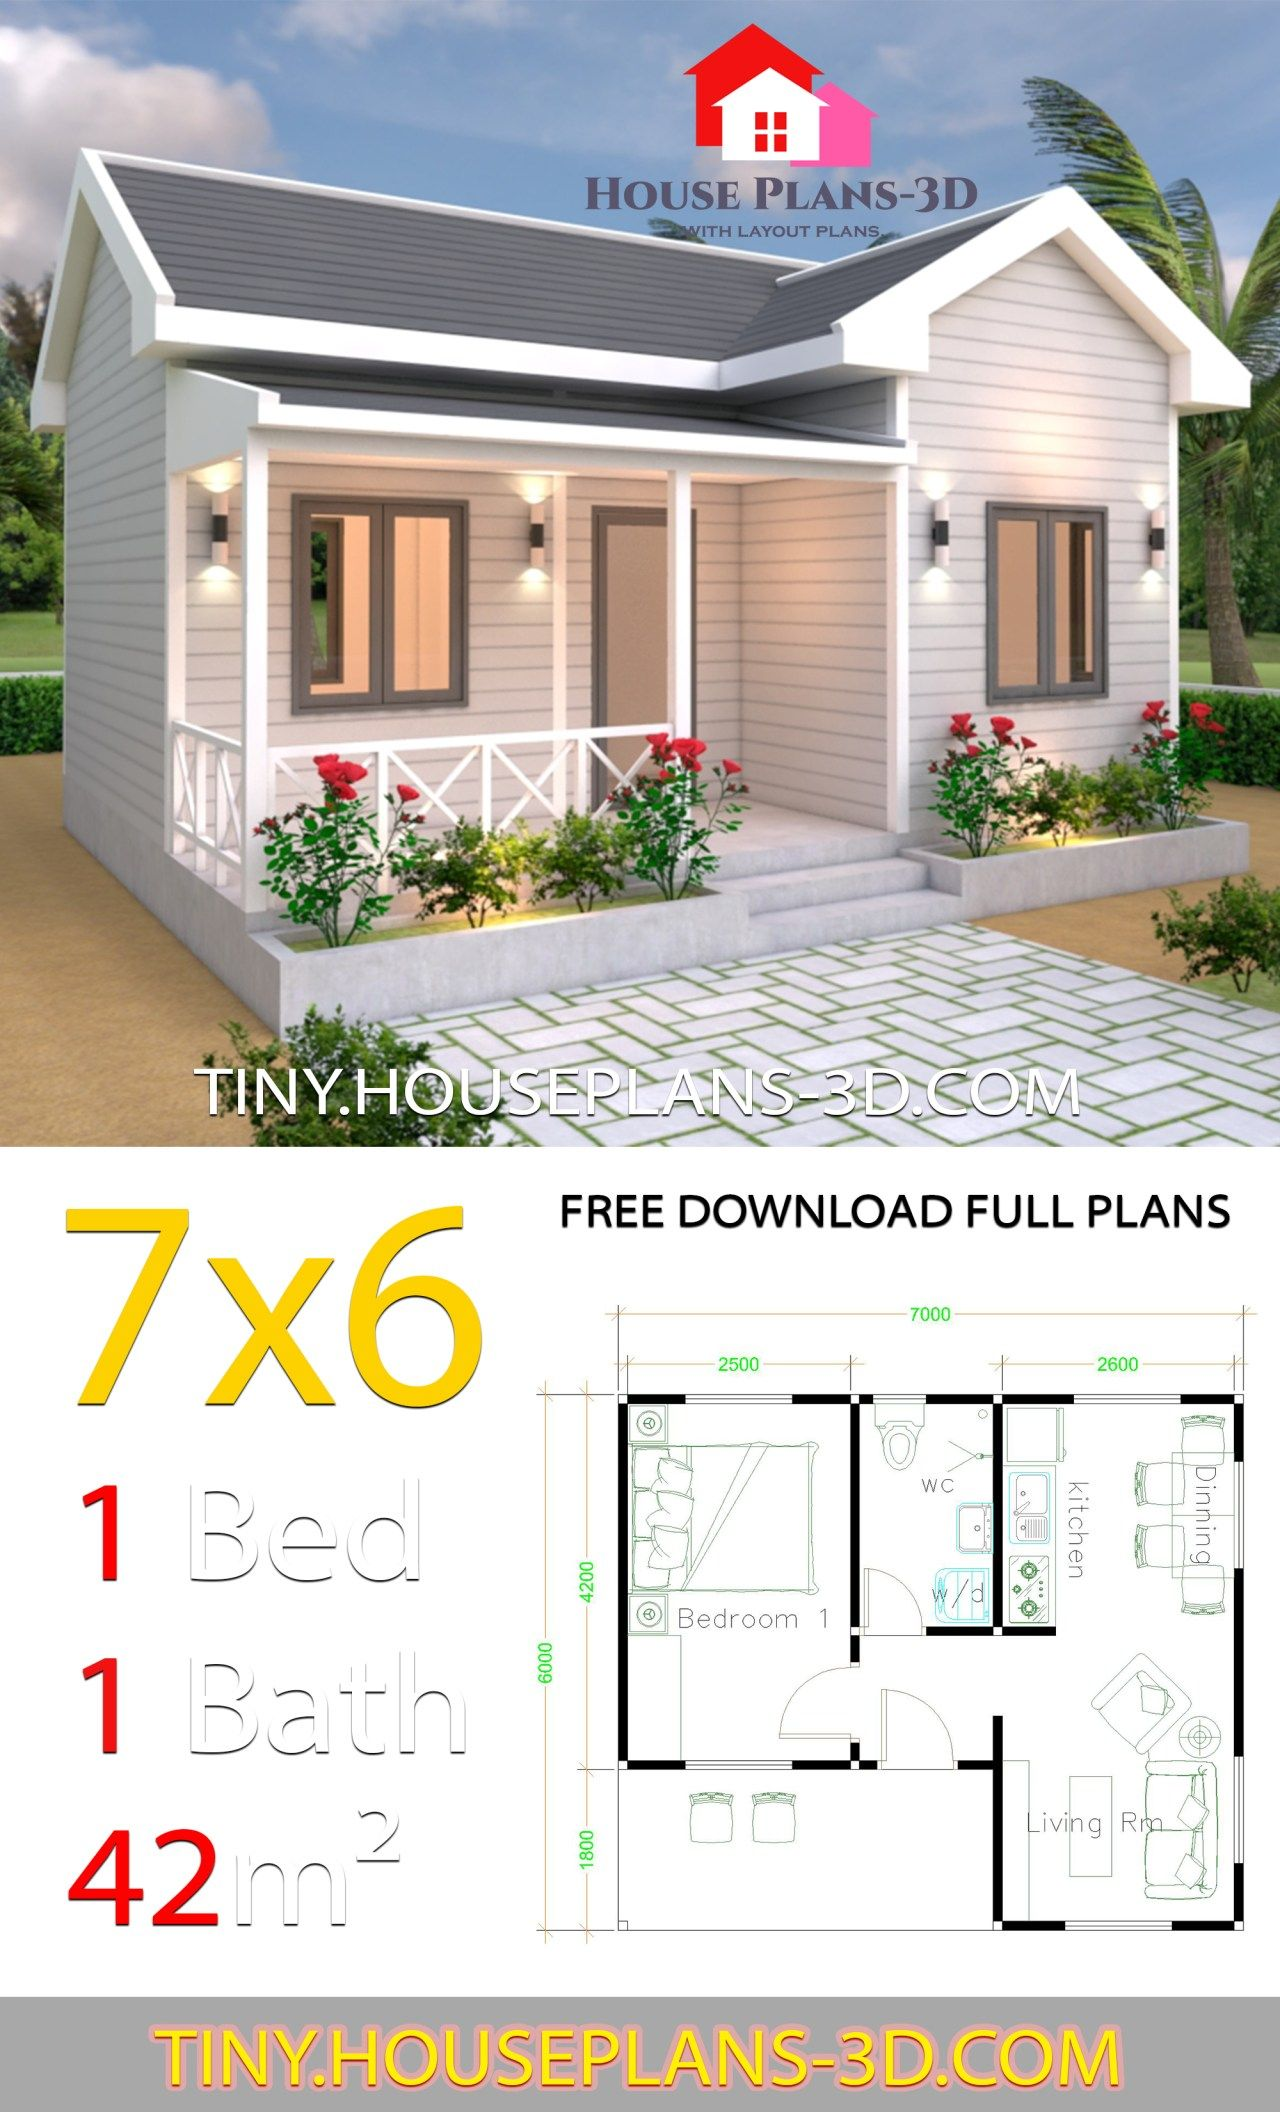 Tiny House Plans 7x6 With One Bedroom Cross Gable Roof Tiny House Plans Small House Floor Plans One Bedroom House Small House Design Plans